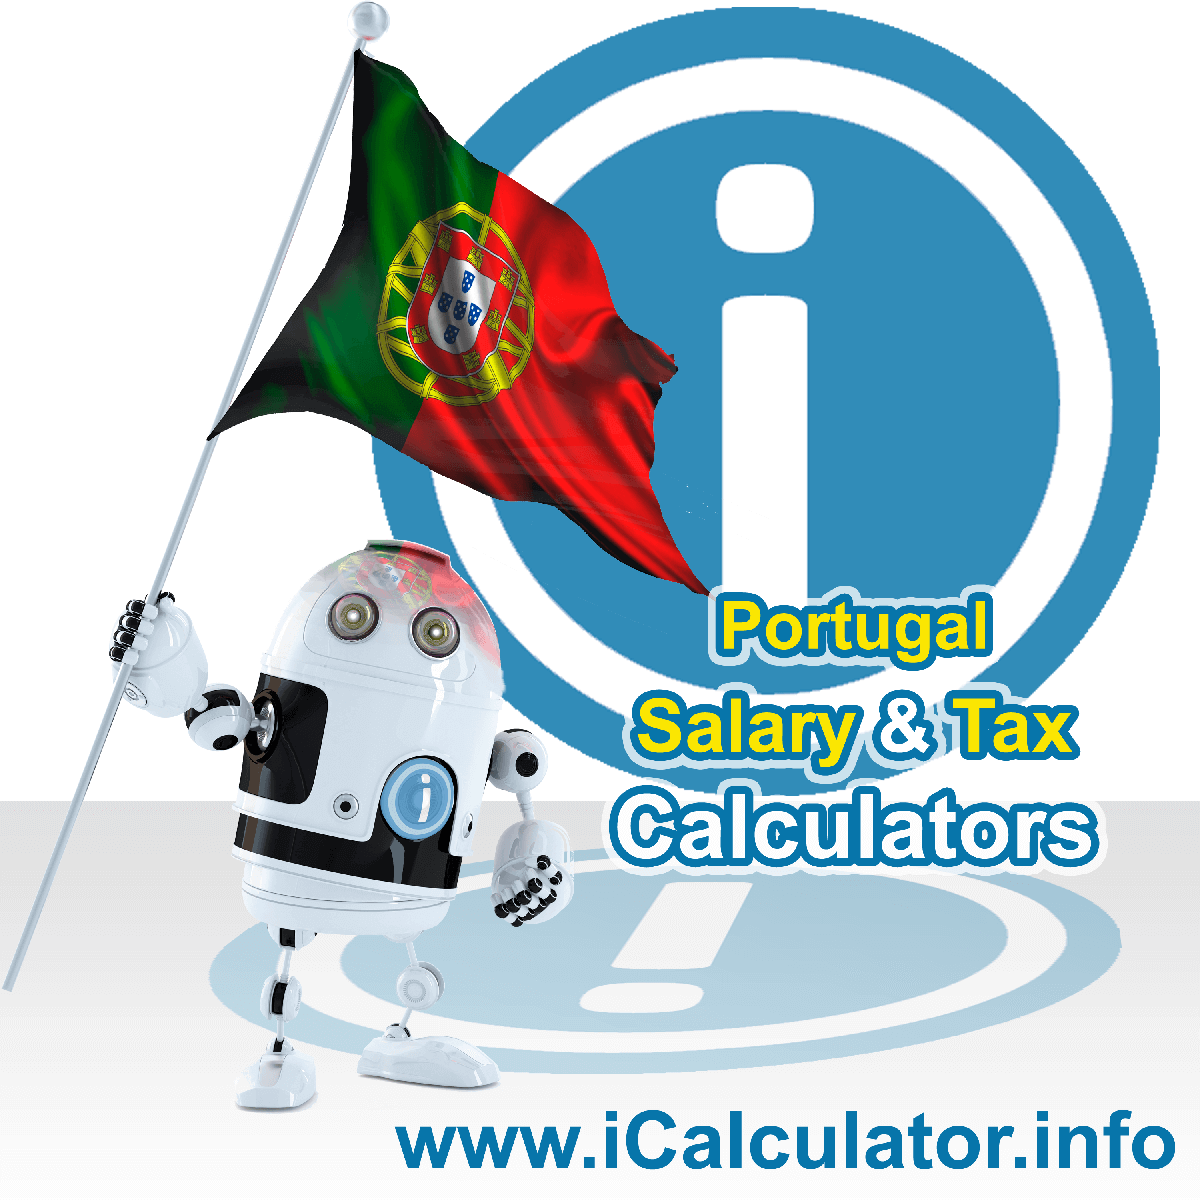 Portugal Tax Calculator. This image shows the Portugal flag and information relating to the tax formula for the Portugal Salary Calculator